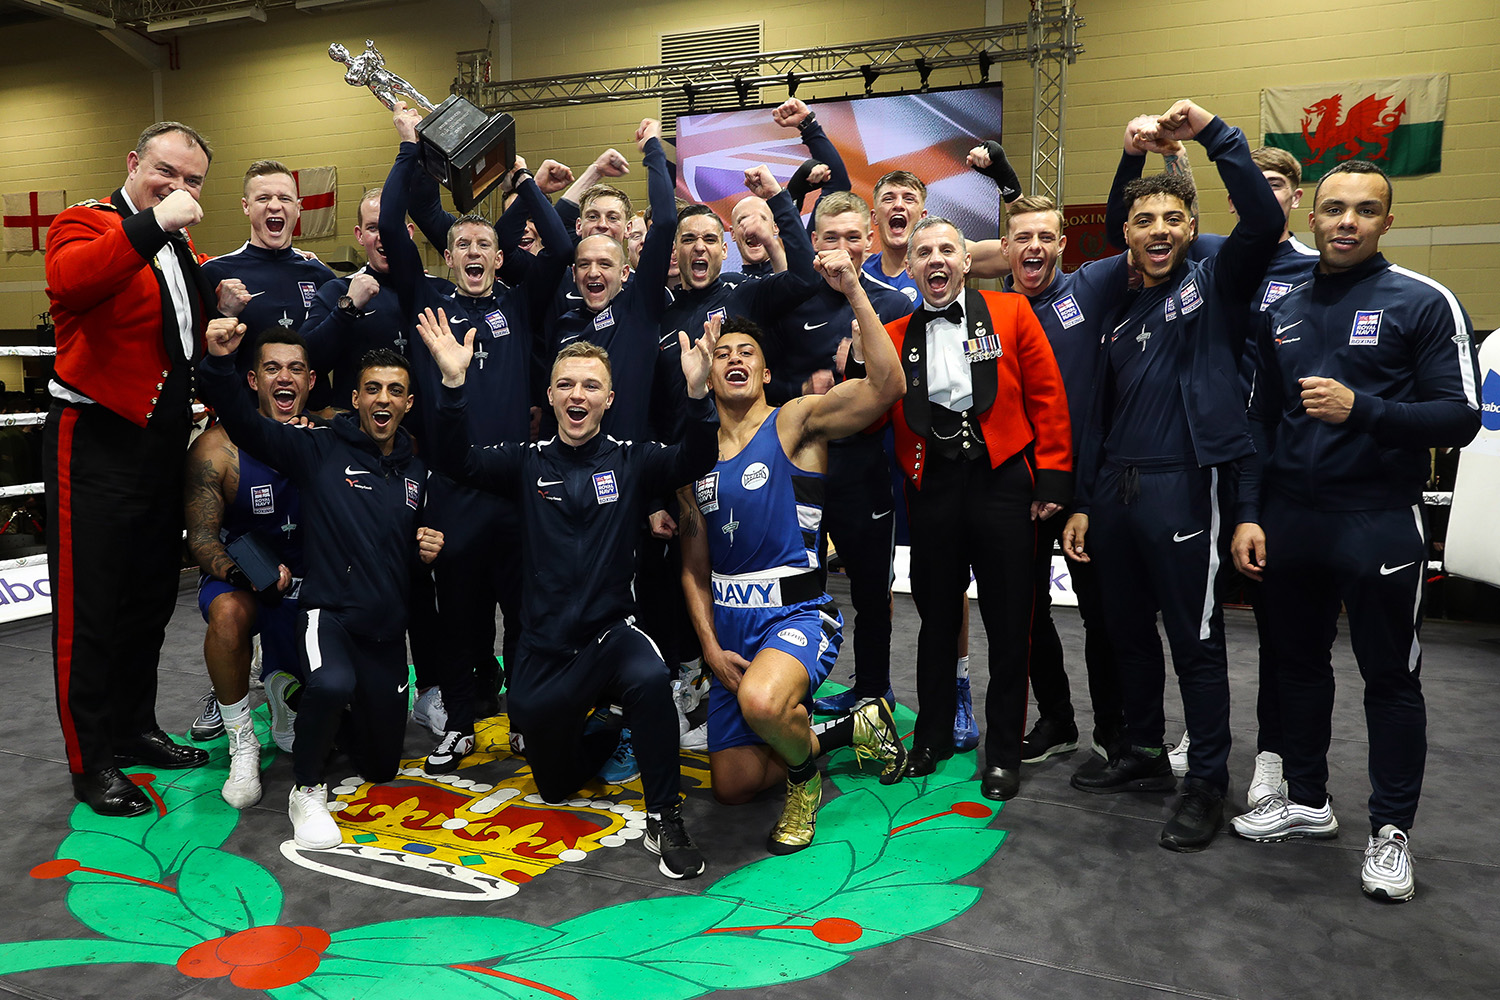 Royal Navy boxers take title of UK Armed Forces Champions